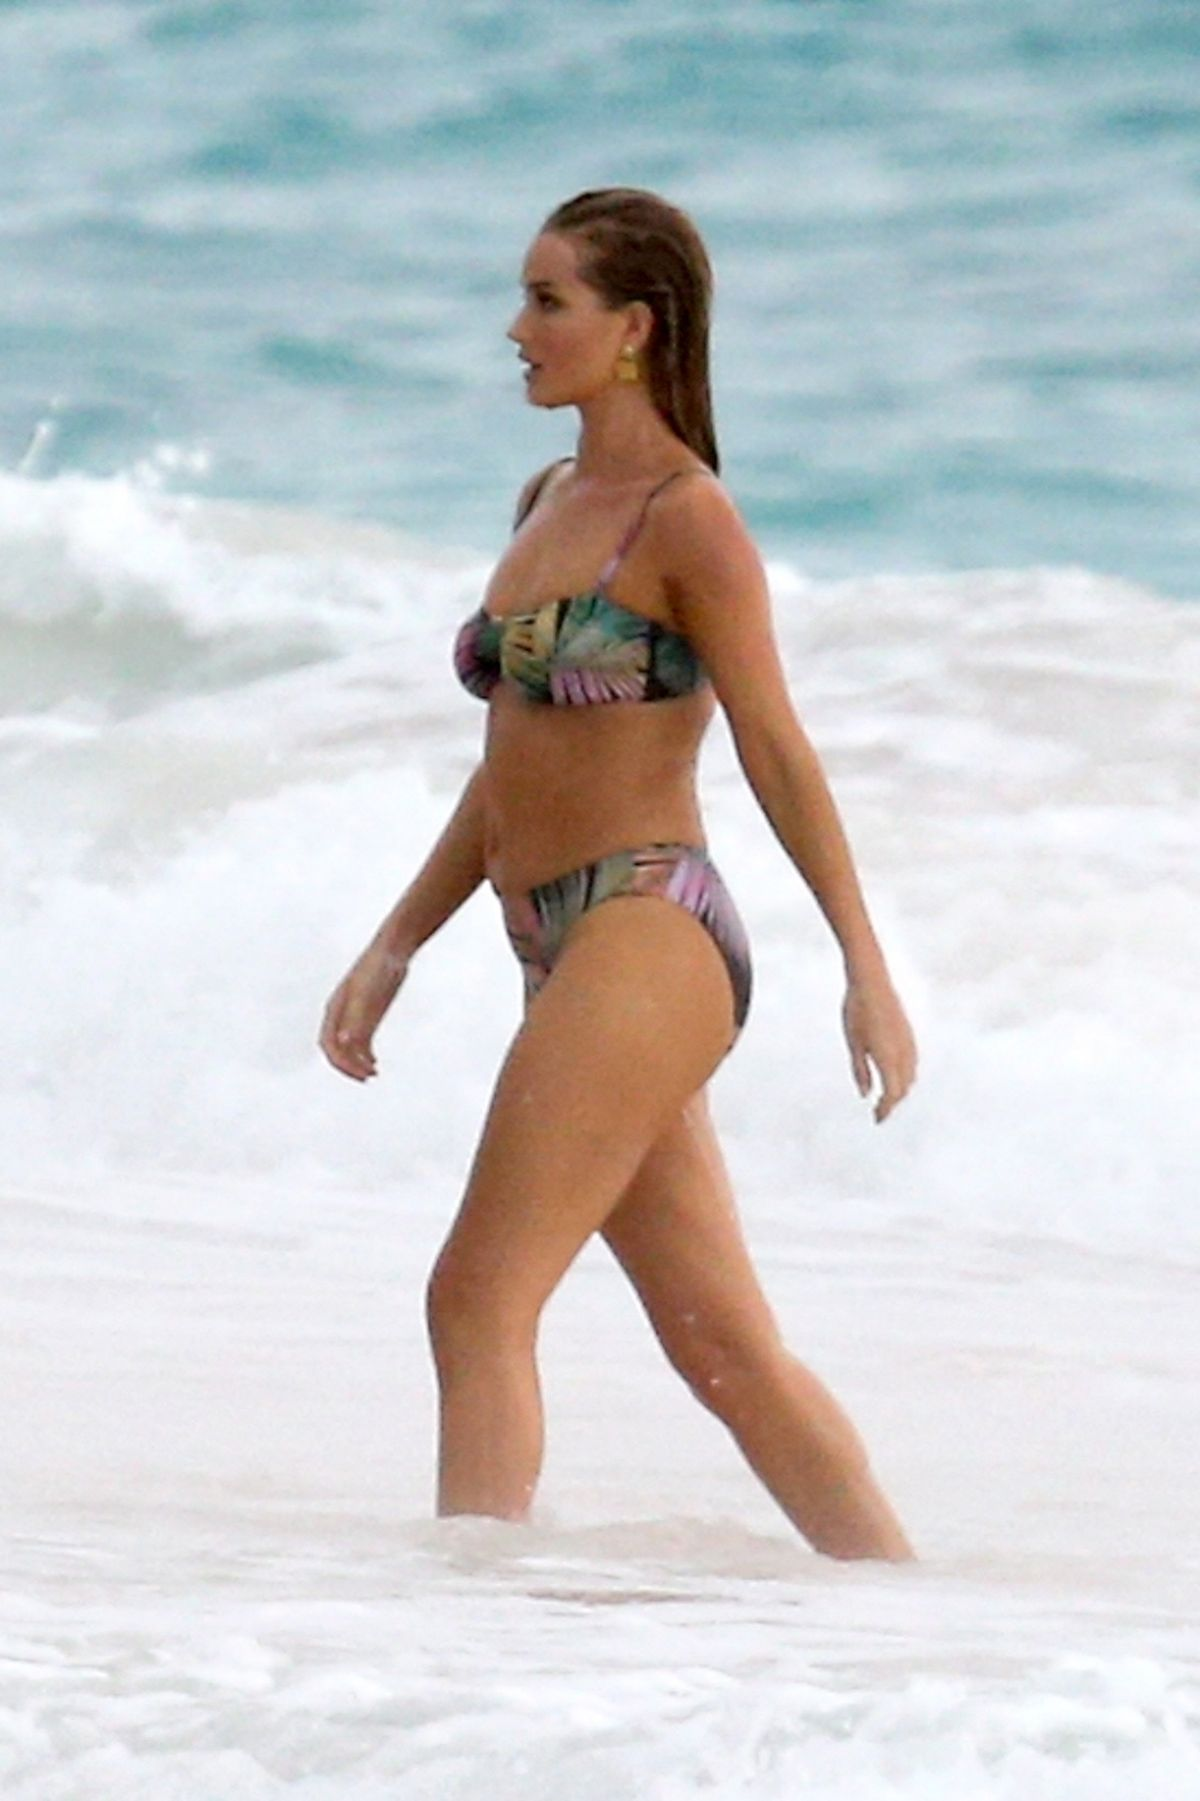 Rosie Huntington Whiteley Bikini Photoshoot at a Beach in the Bahamas